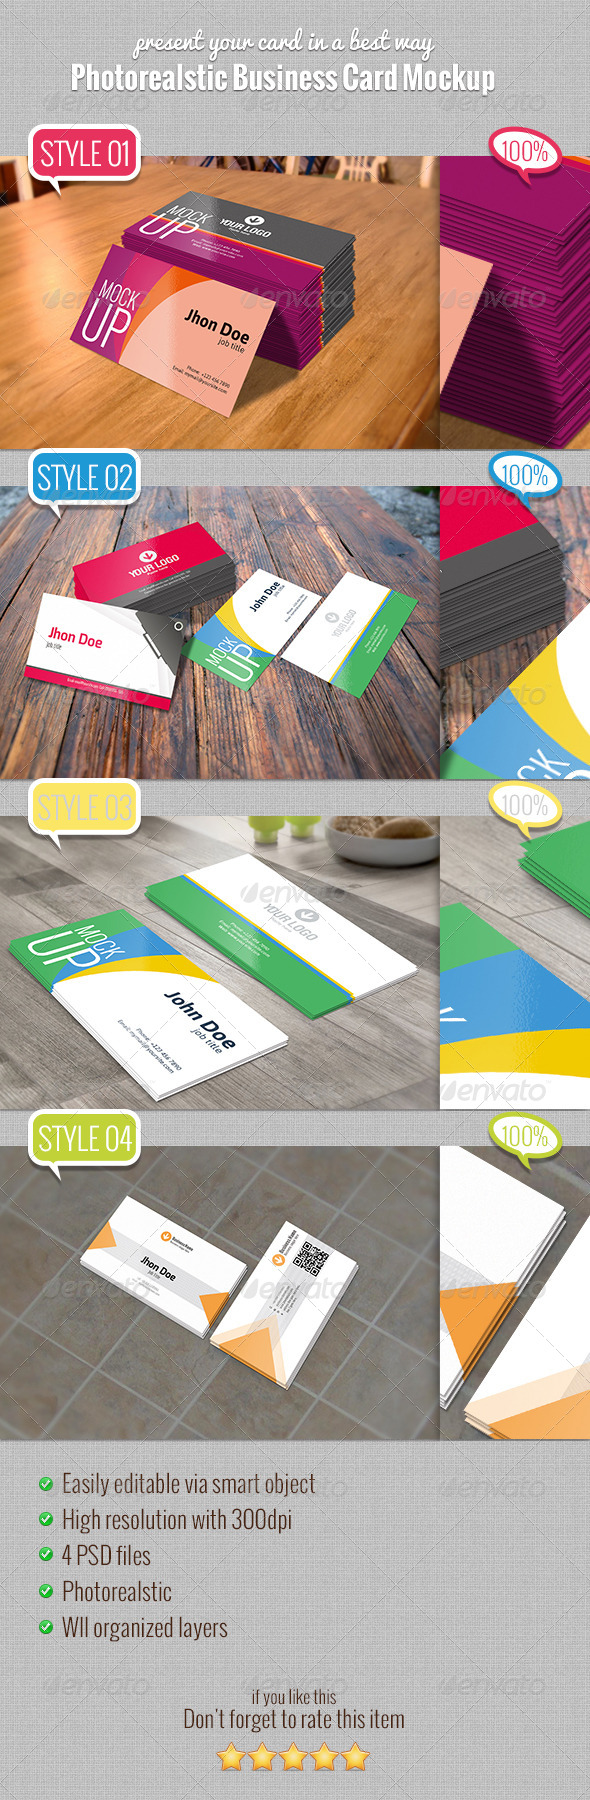 GraphicRiver Photorealstic Business Card Mockup 5178106